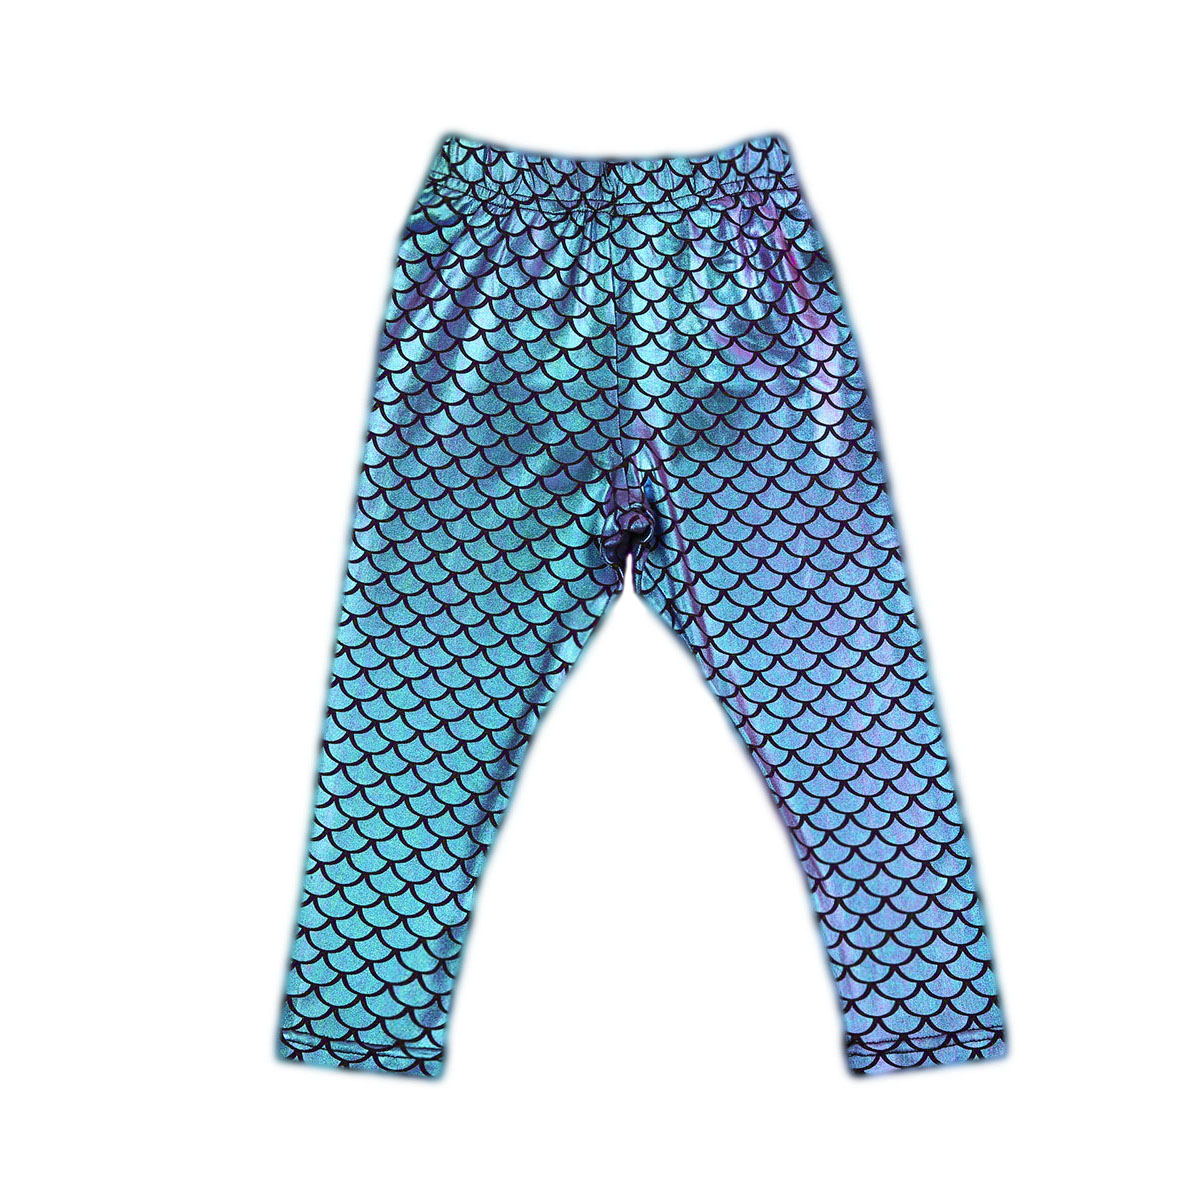 New Fashion Toddled Baby Kid Girl Mermaid Shiny Fish Scale Leggings Stretchy Pants Pencil Trousers 2018